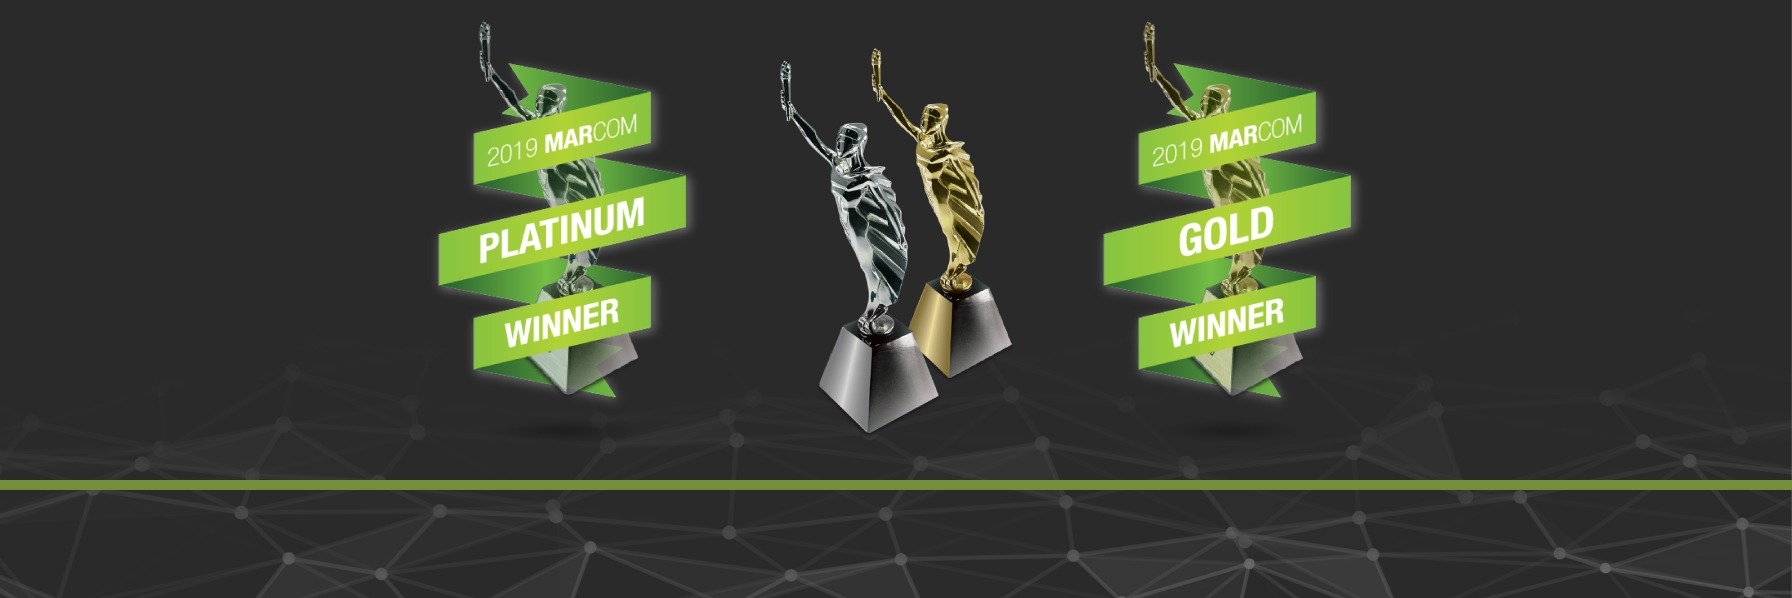 FiG Takes Home 3 MarCom Awards